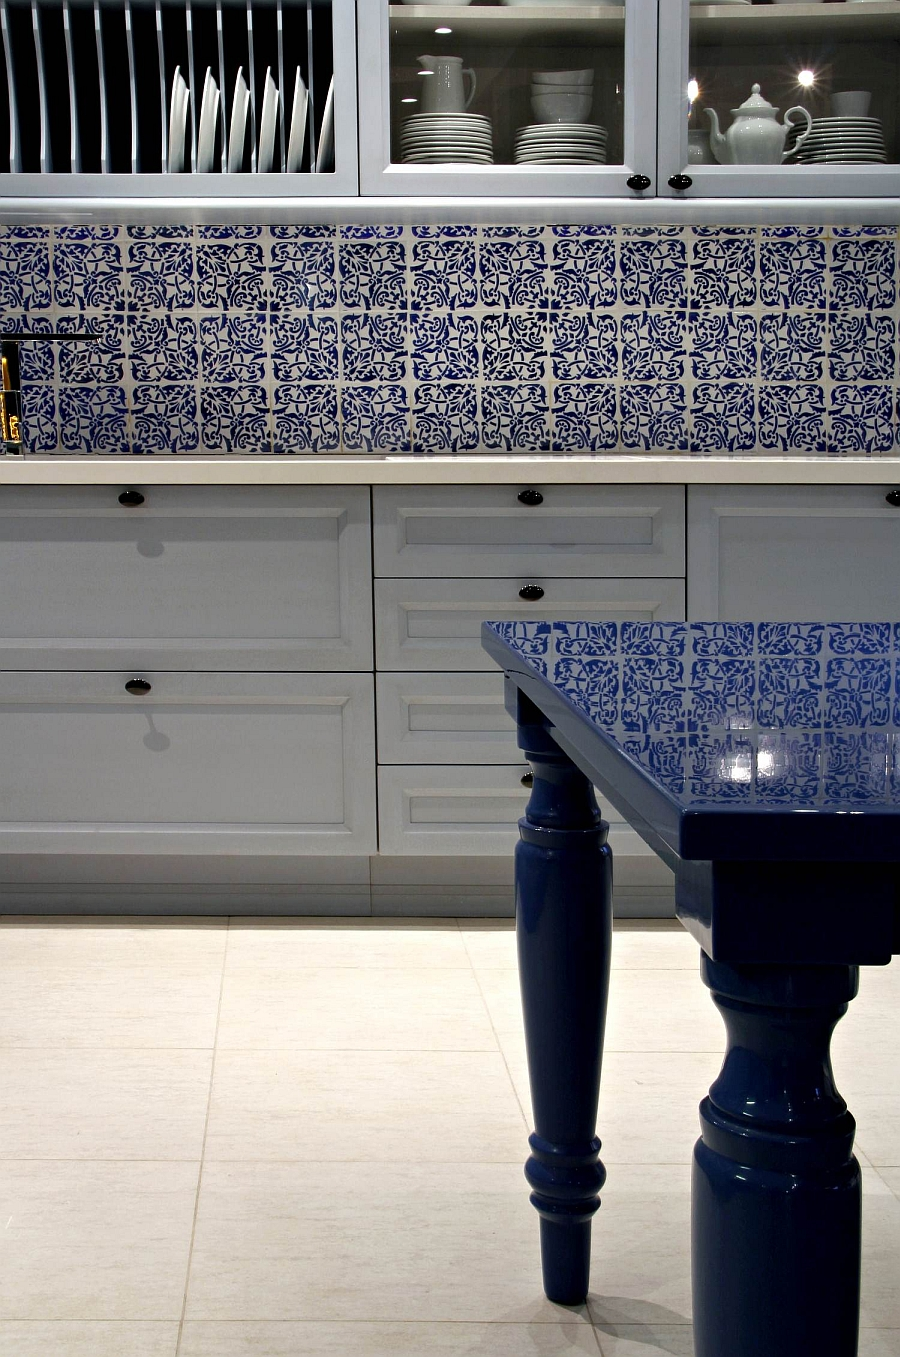 Beautiful shelves, wall tiles and table give the setting a classic appeal